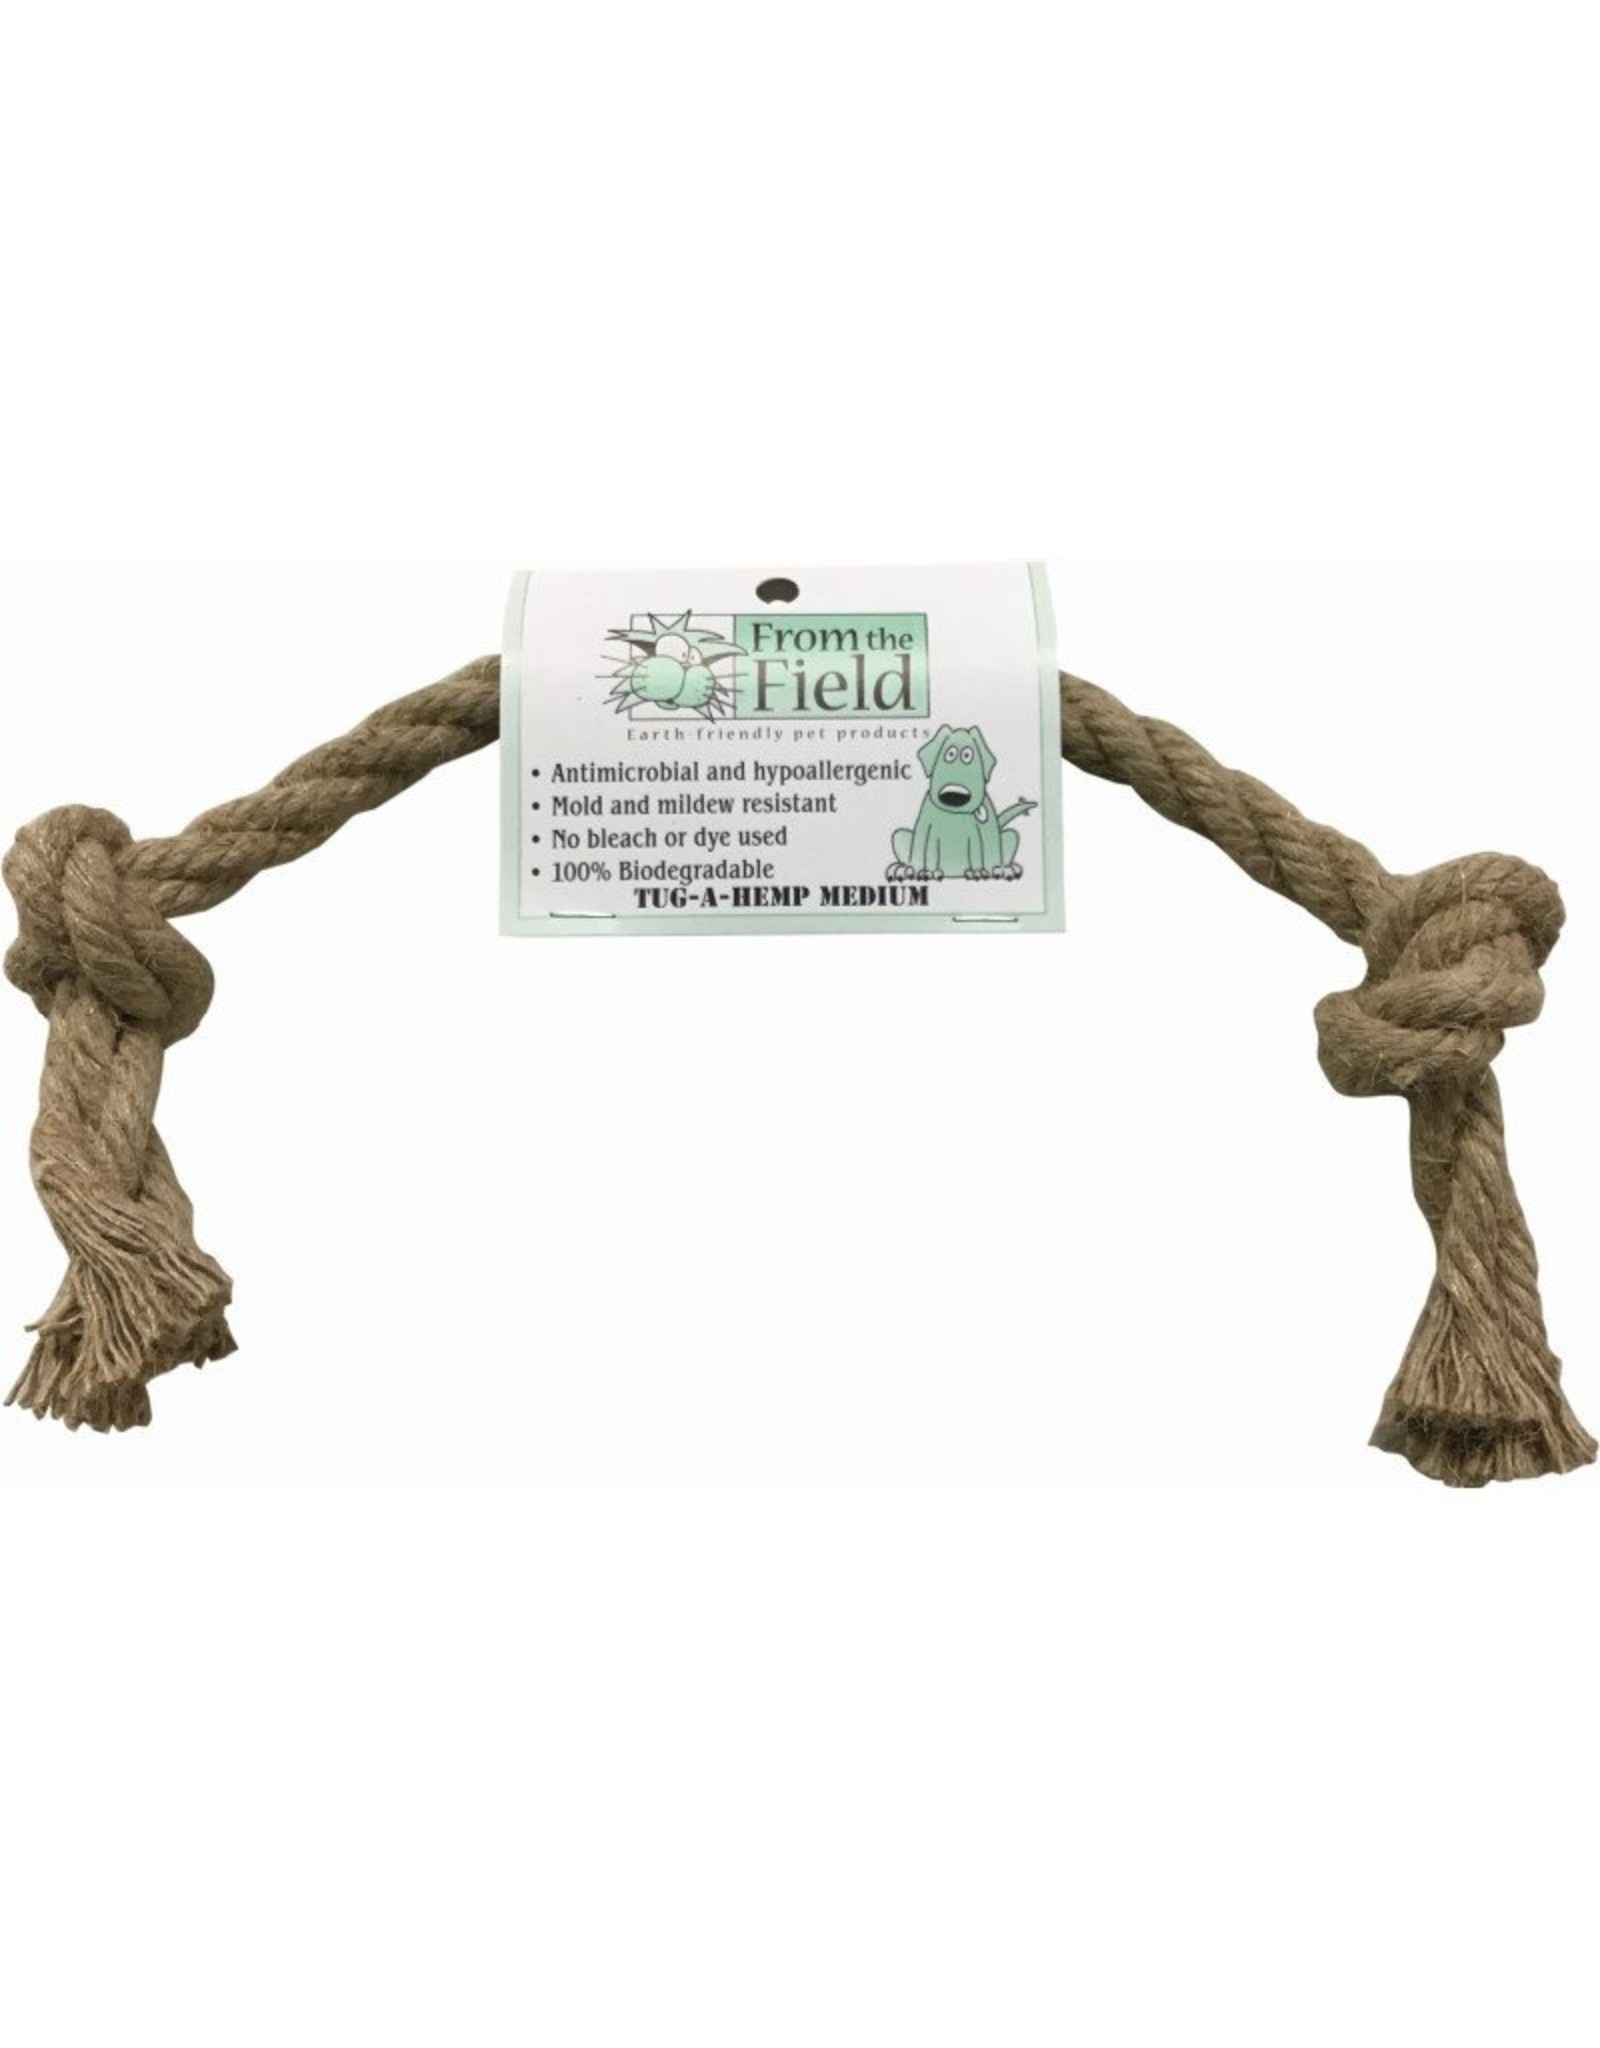 From the Field From the Field Tug-A-Hemp Natural Rope Dog Tug Toy